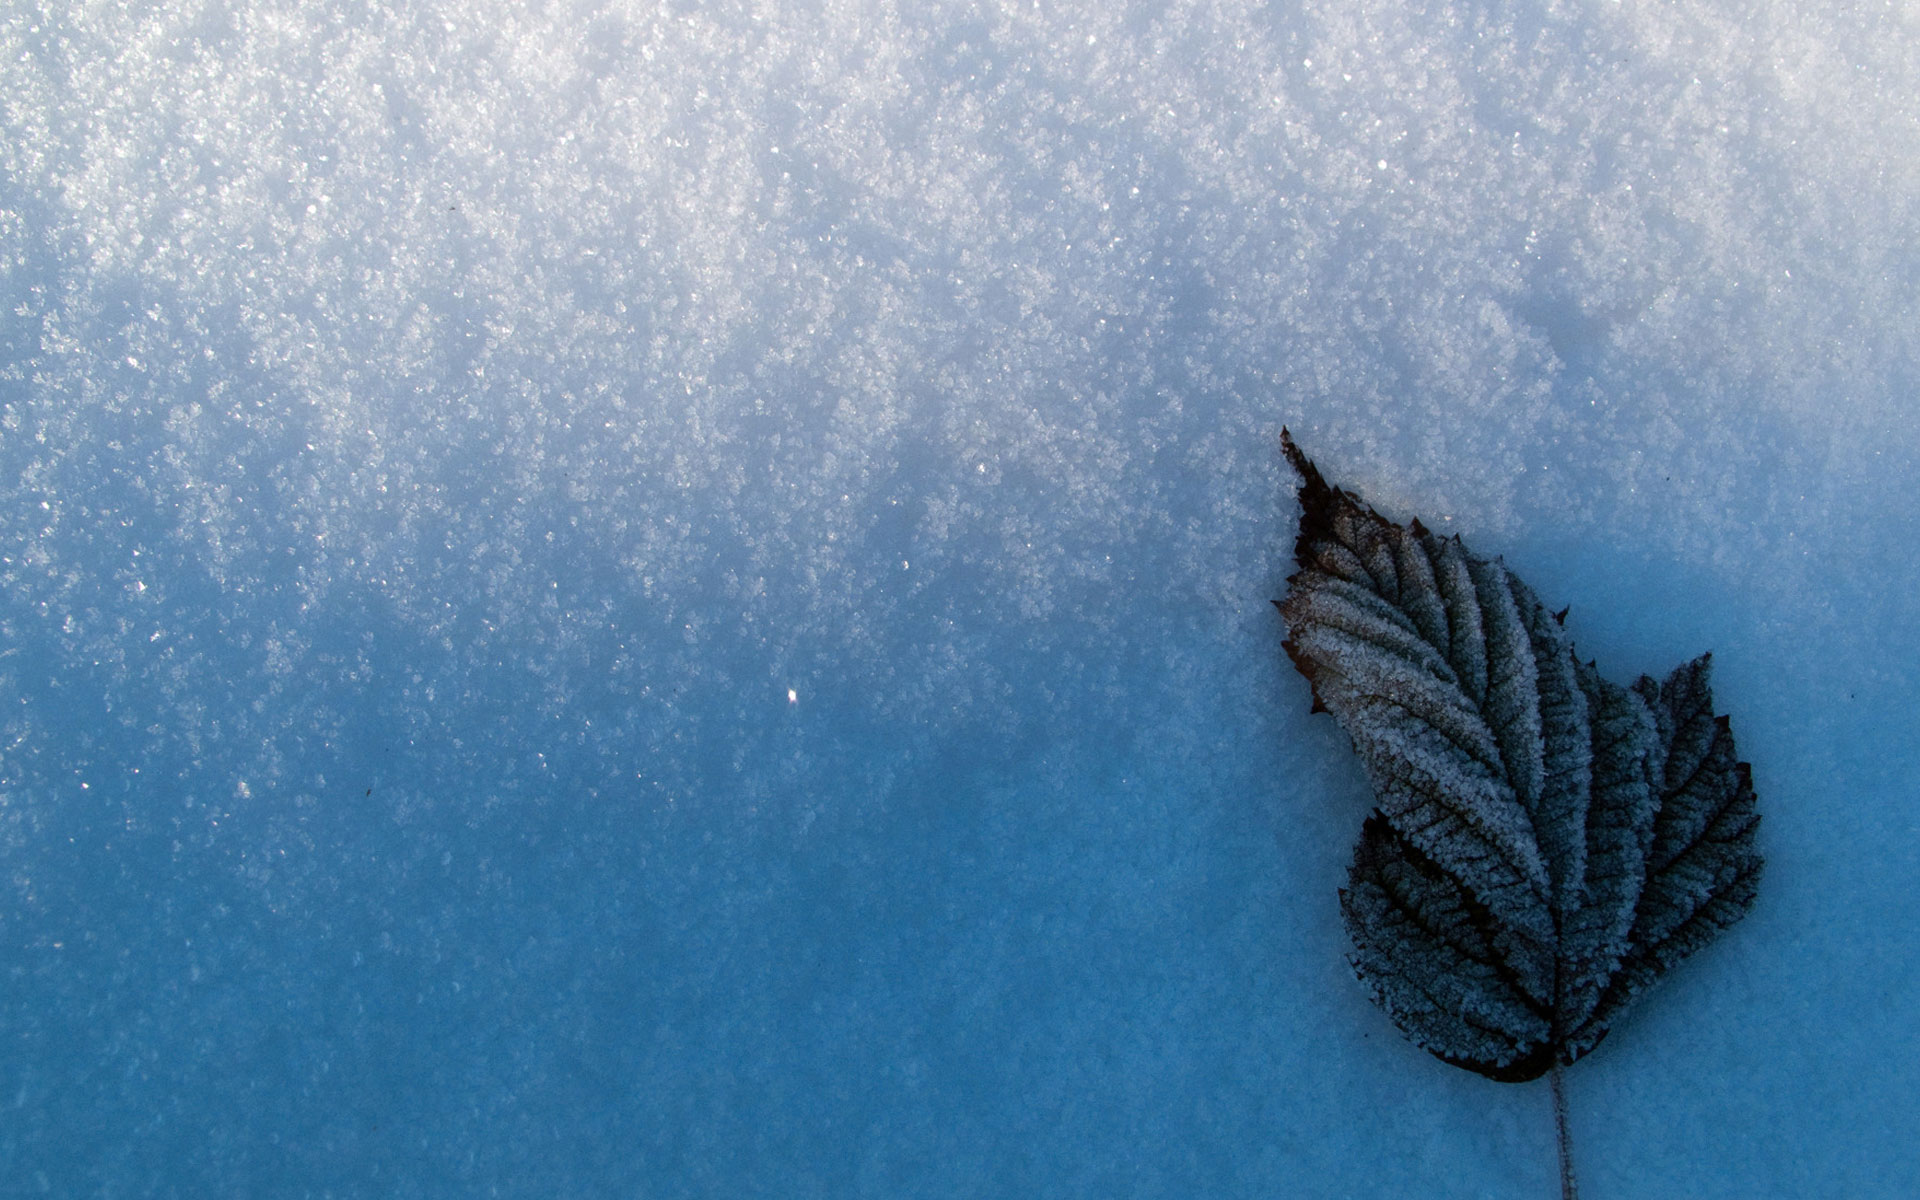 Leaf In The Snow 2289571 Hd Wallpaper Backgrounds